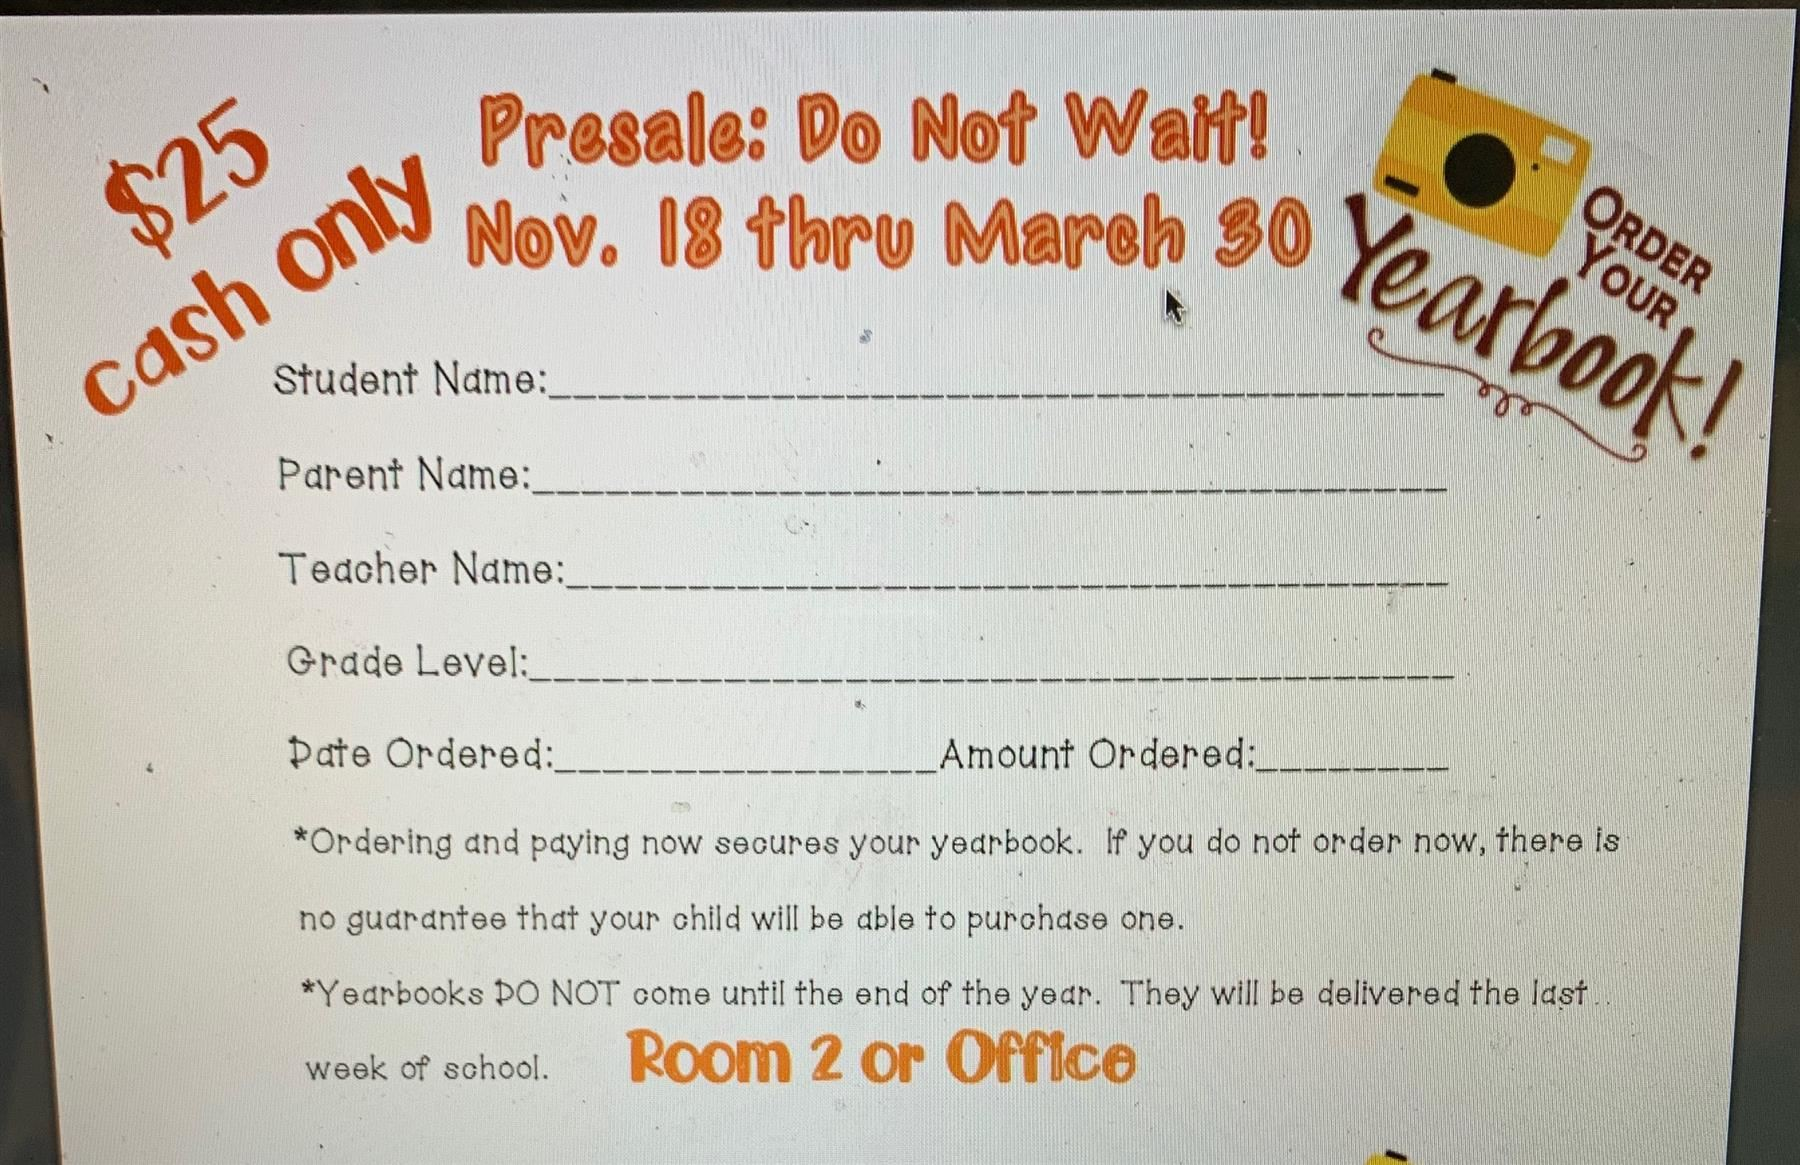 Yearbook Presale